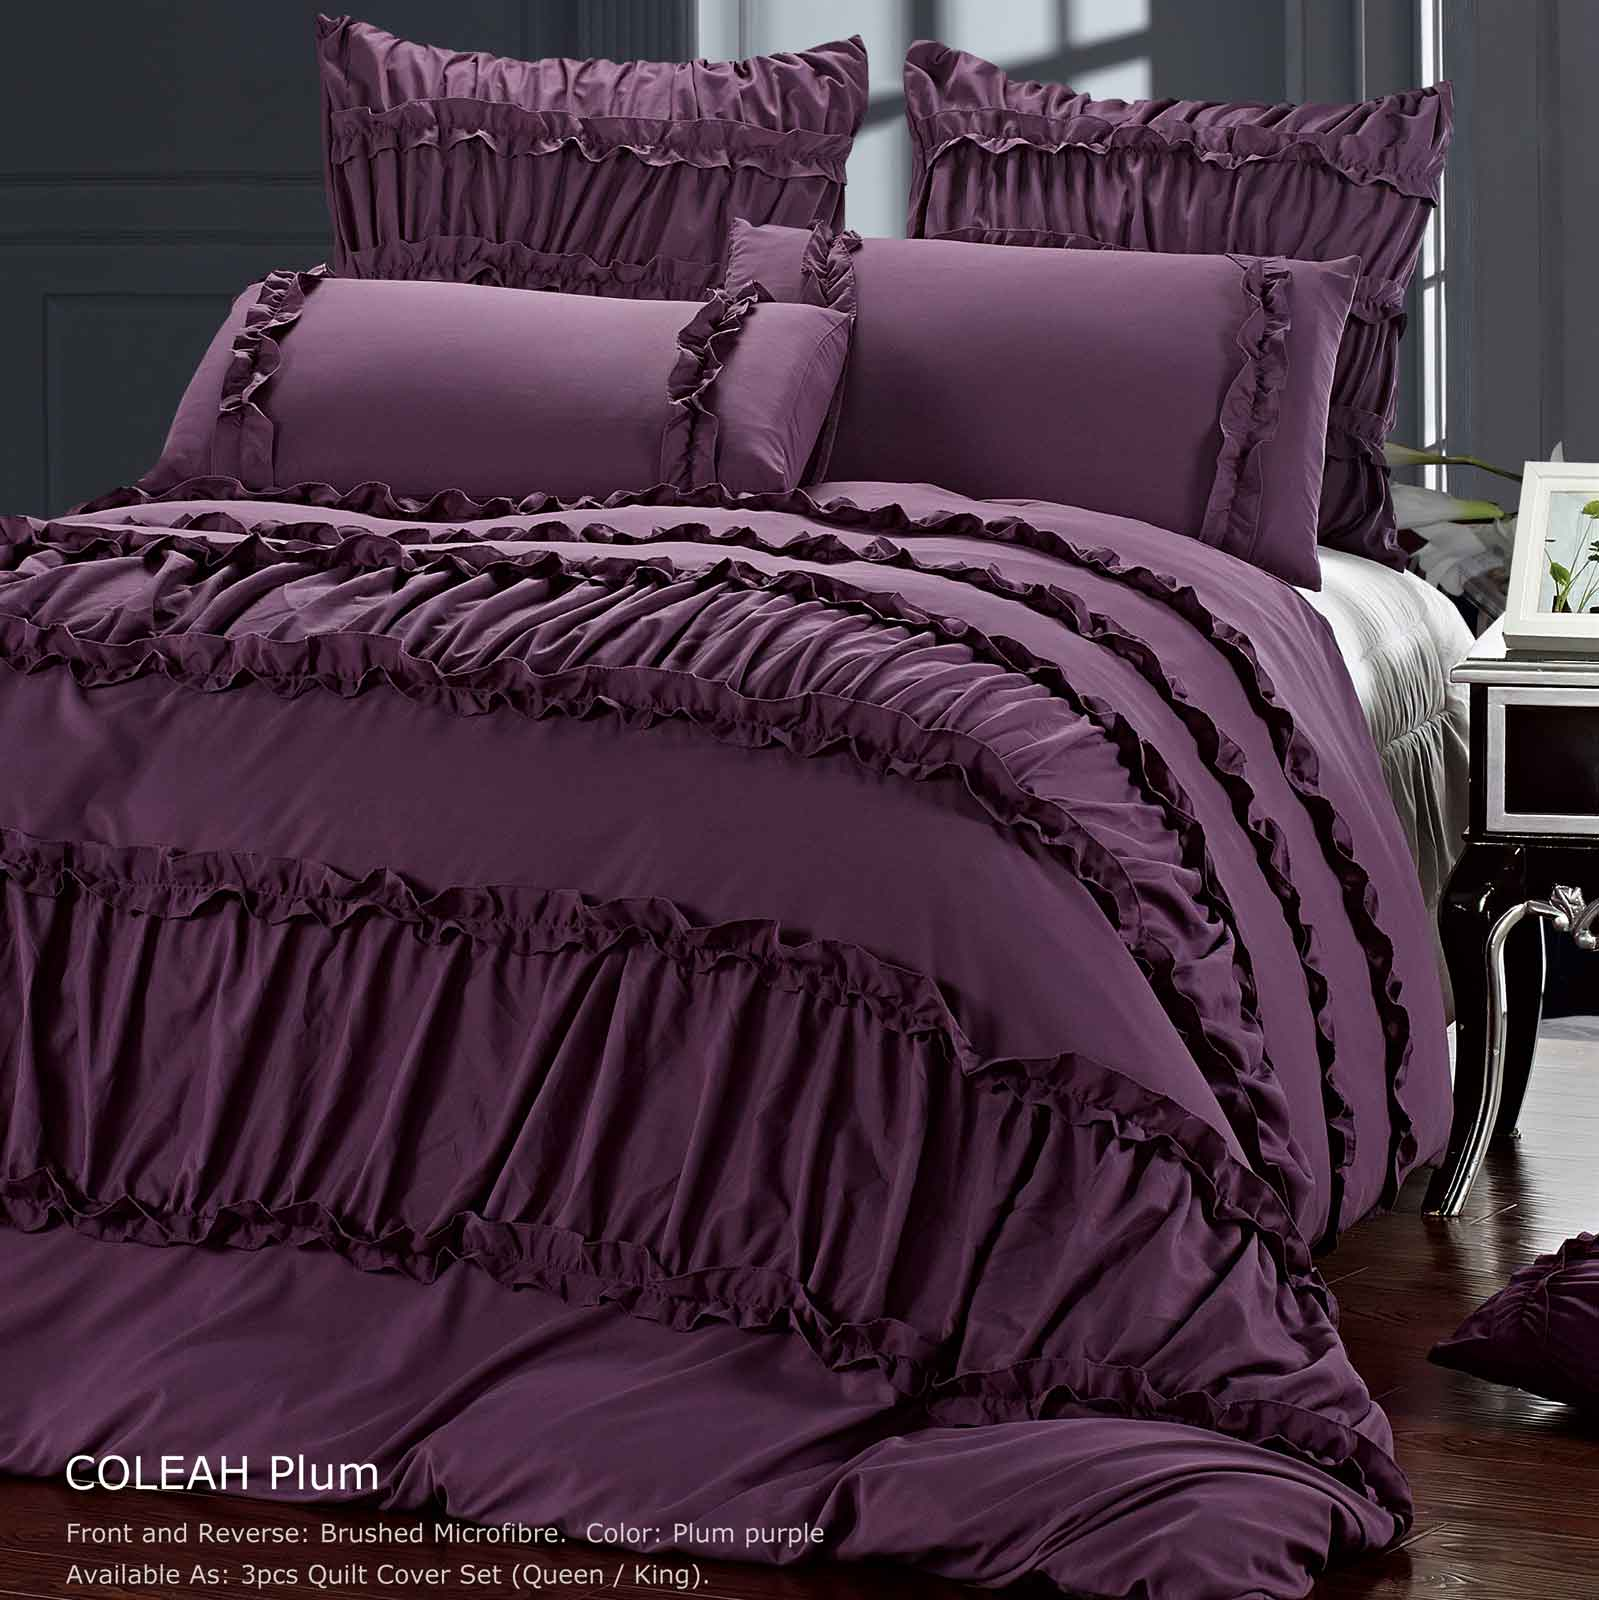 Purple Mattress Australia 1000 43 Images About Bedroom On Pinterest Dubai Mall Bed